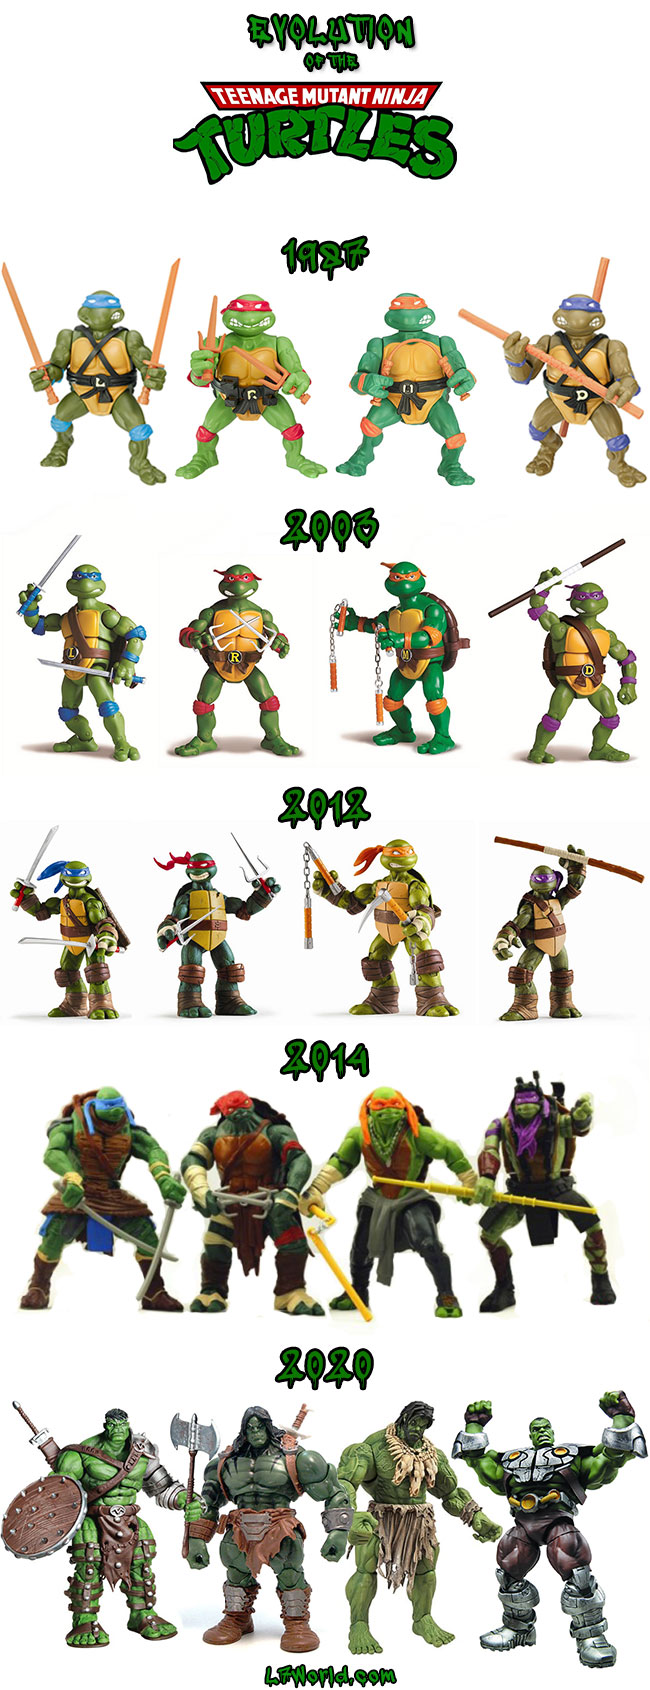 Teenage Mutant Ninja Turtles movie toys 2014